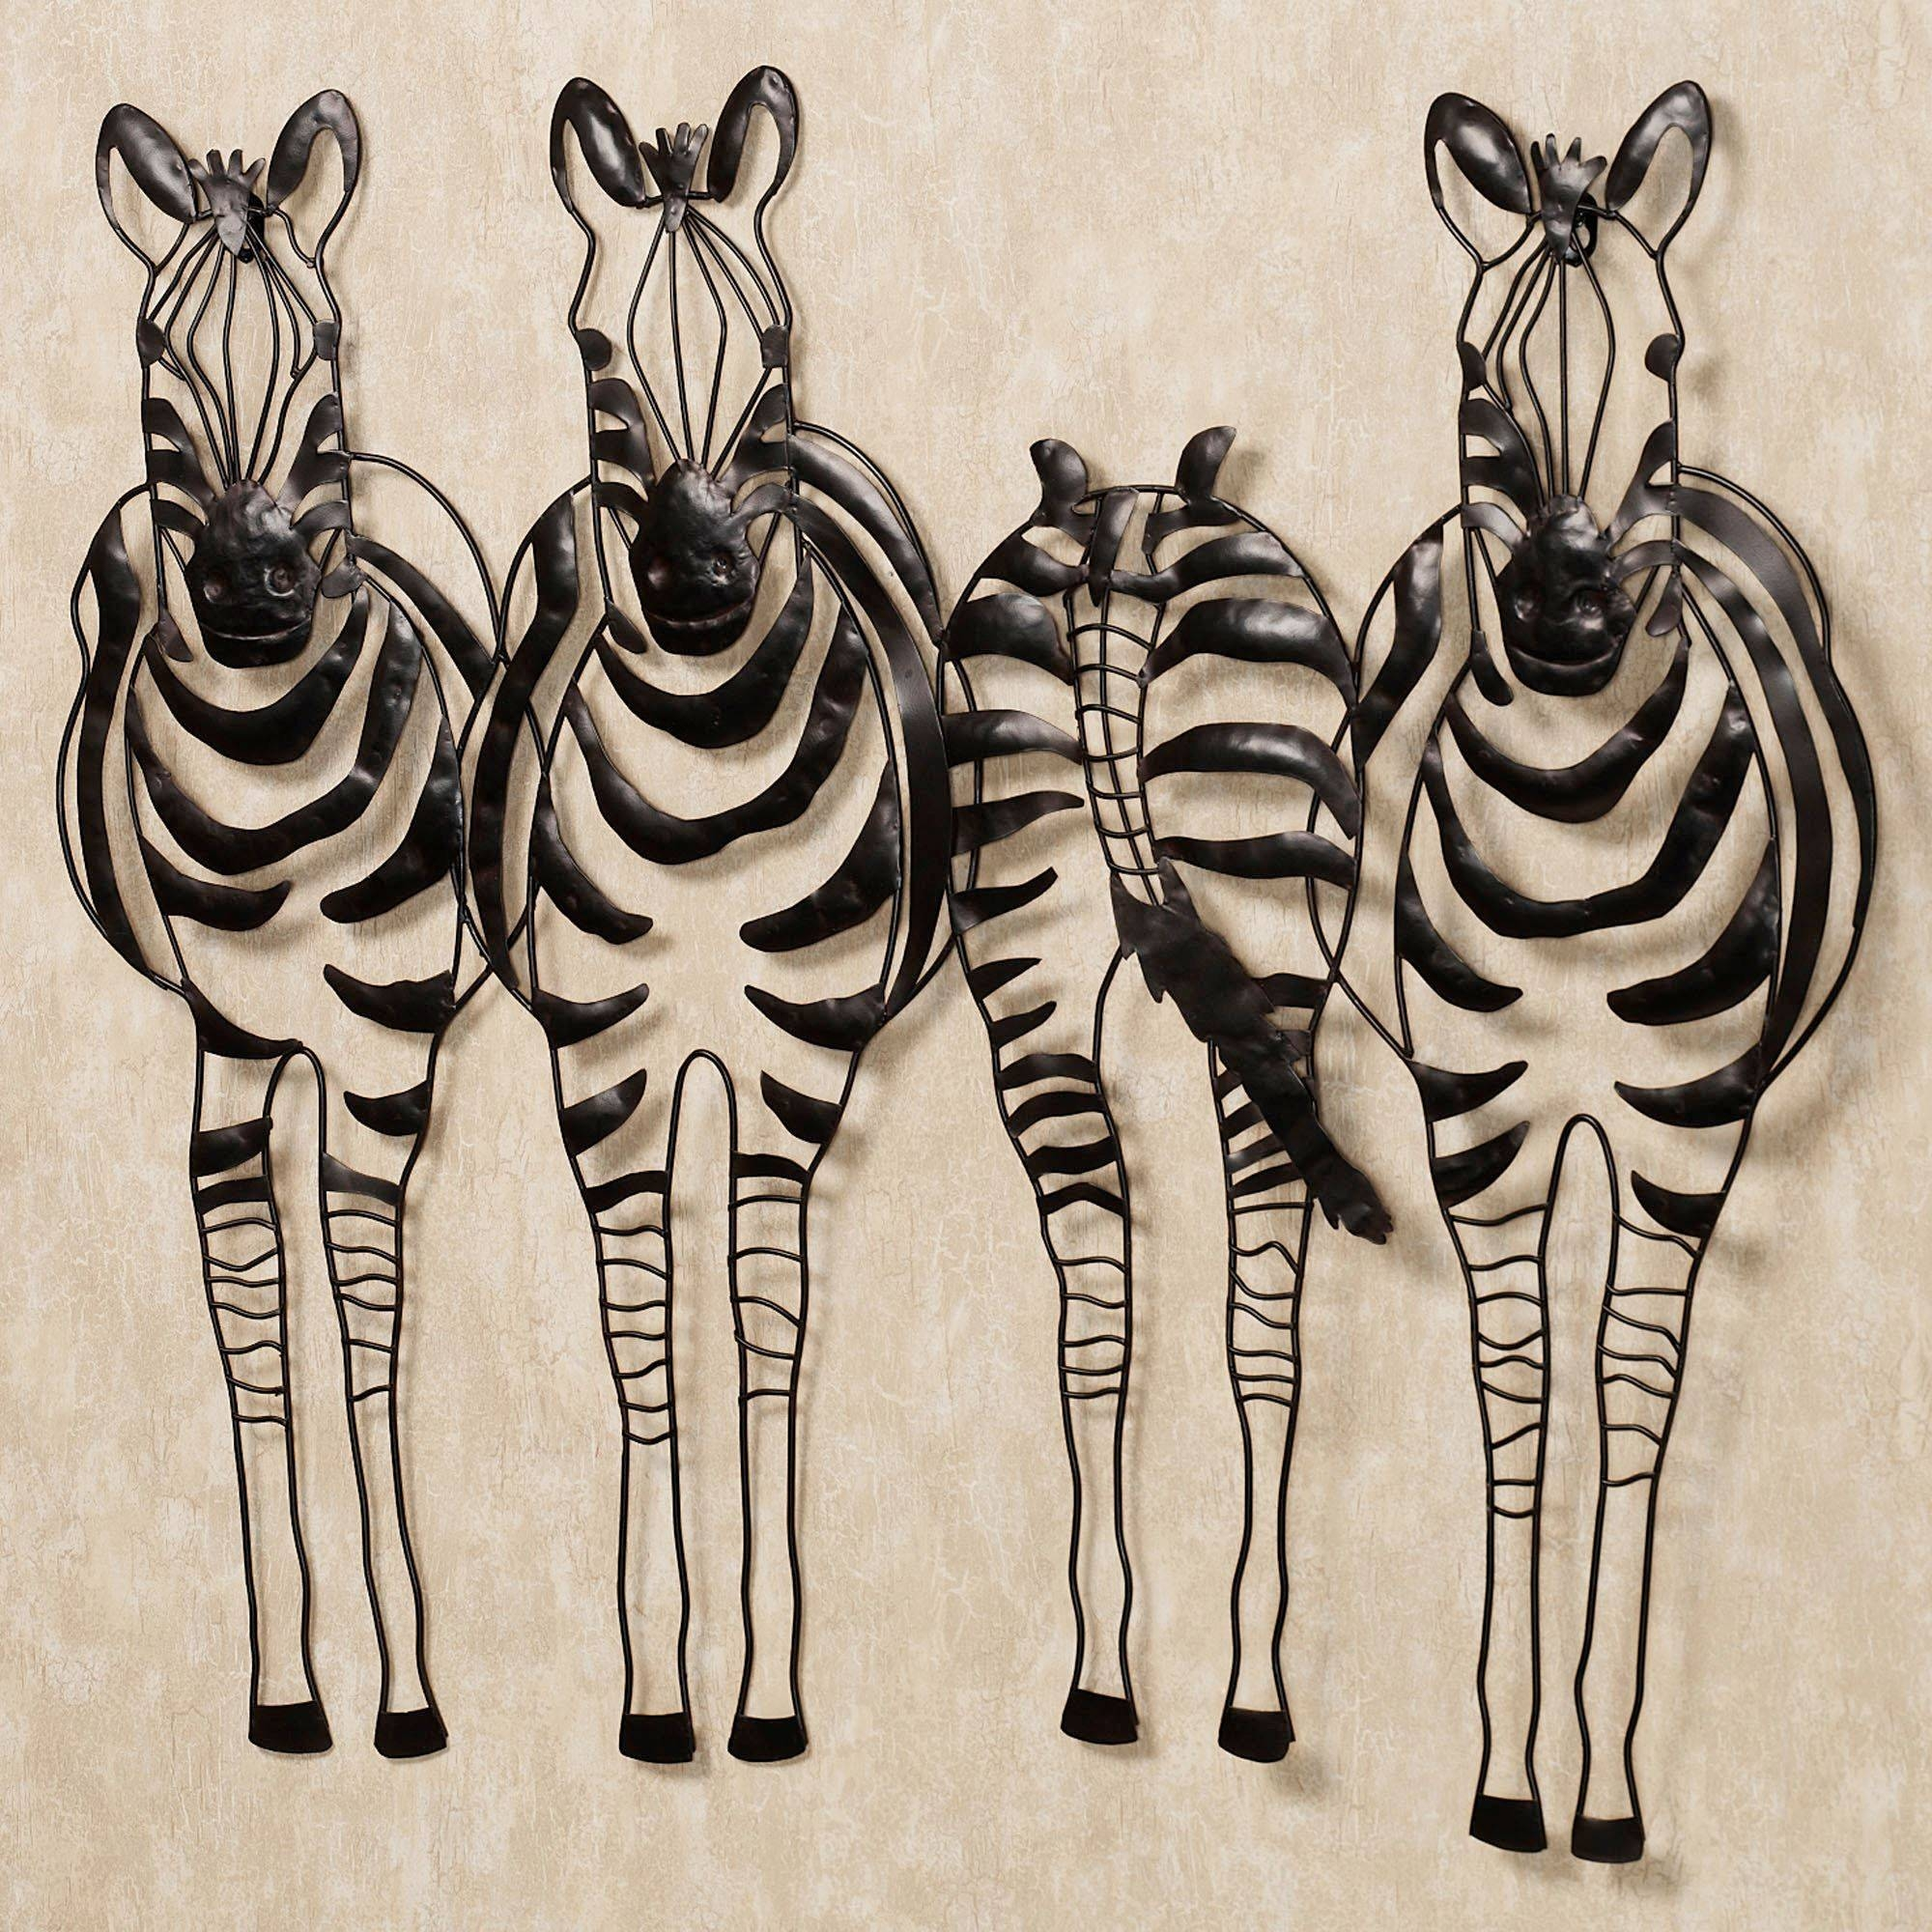 You Go Your Way Zebra Metal Wall Sculpture Art In Most Recently Released African Metal Wall Art (View 30 of 30)